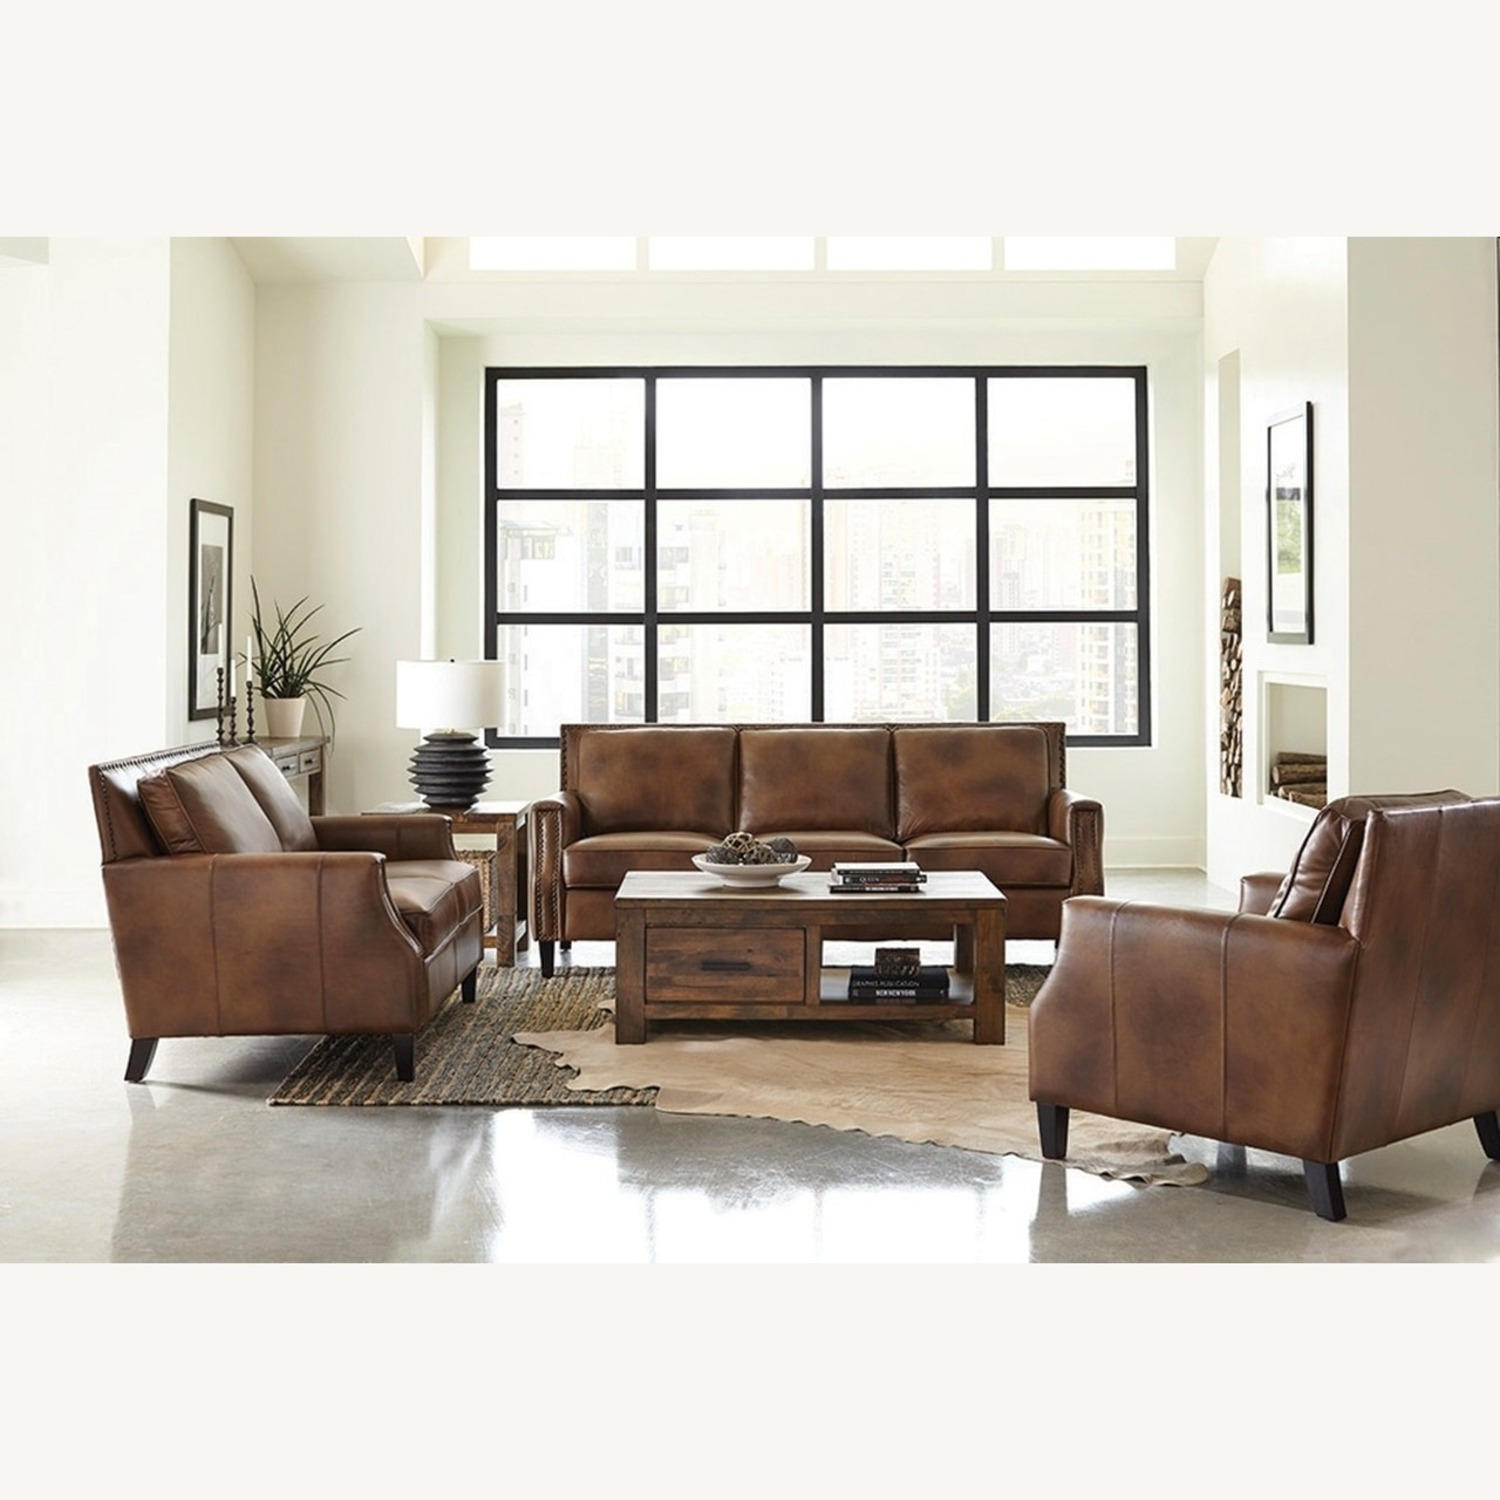 Sofa In Brown Leather Upholstery - image-2